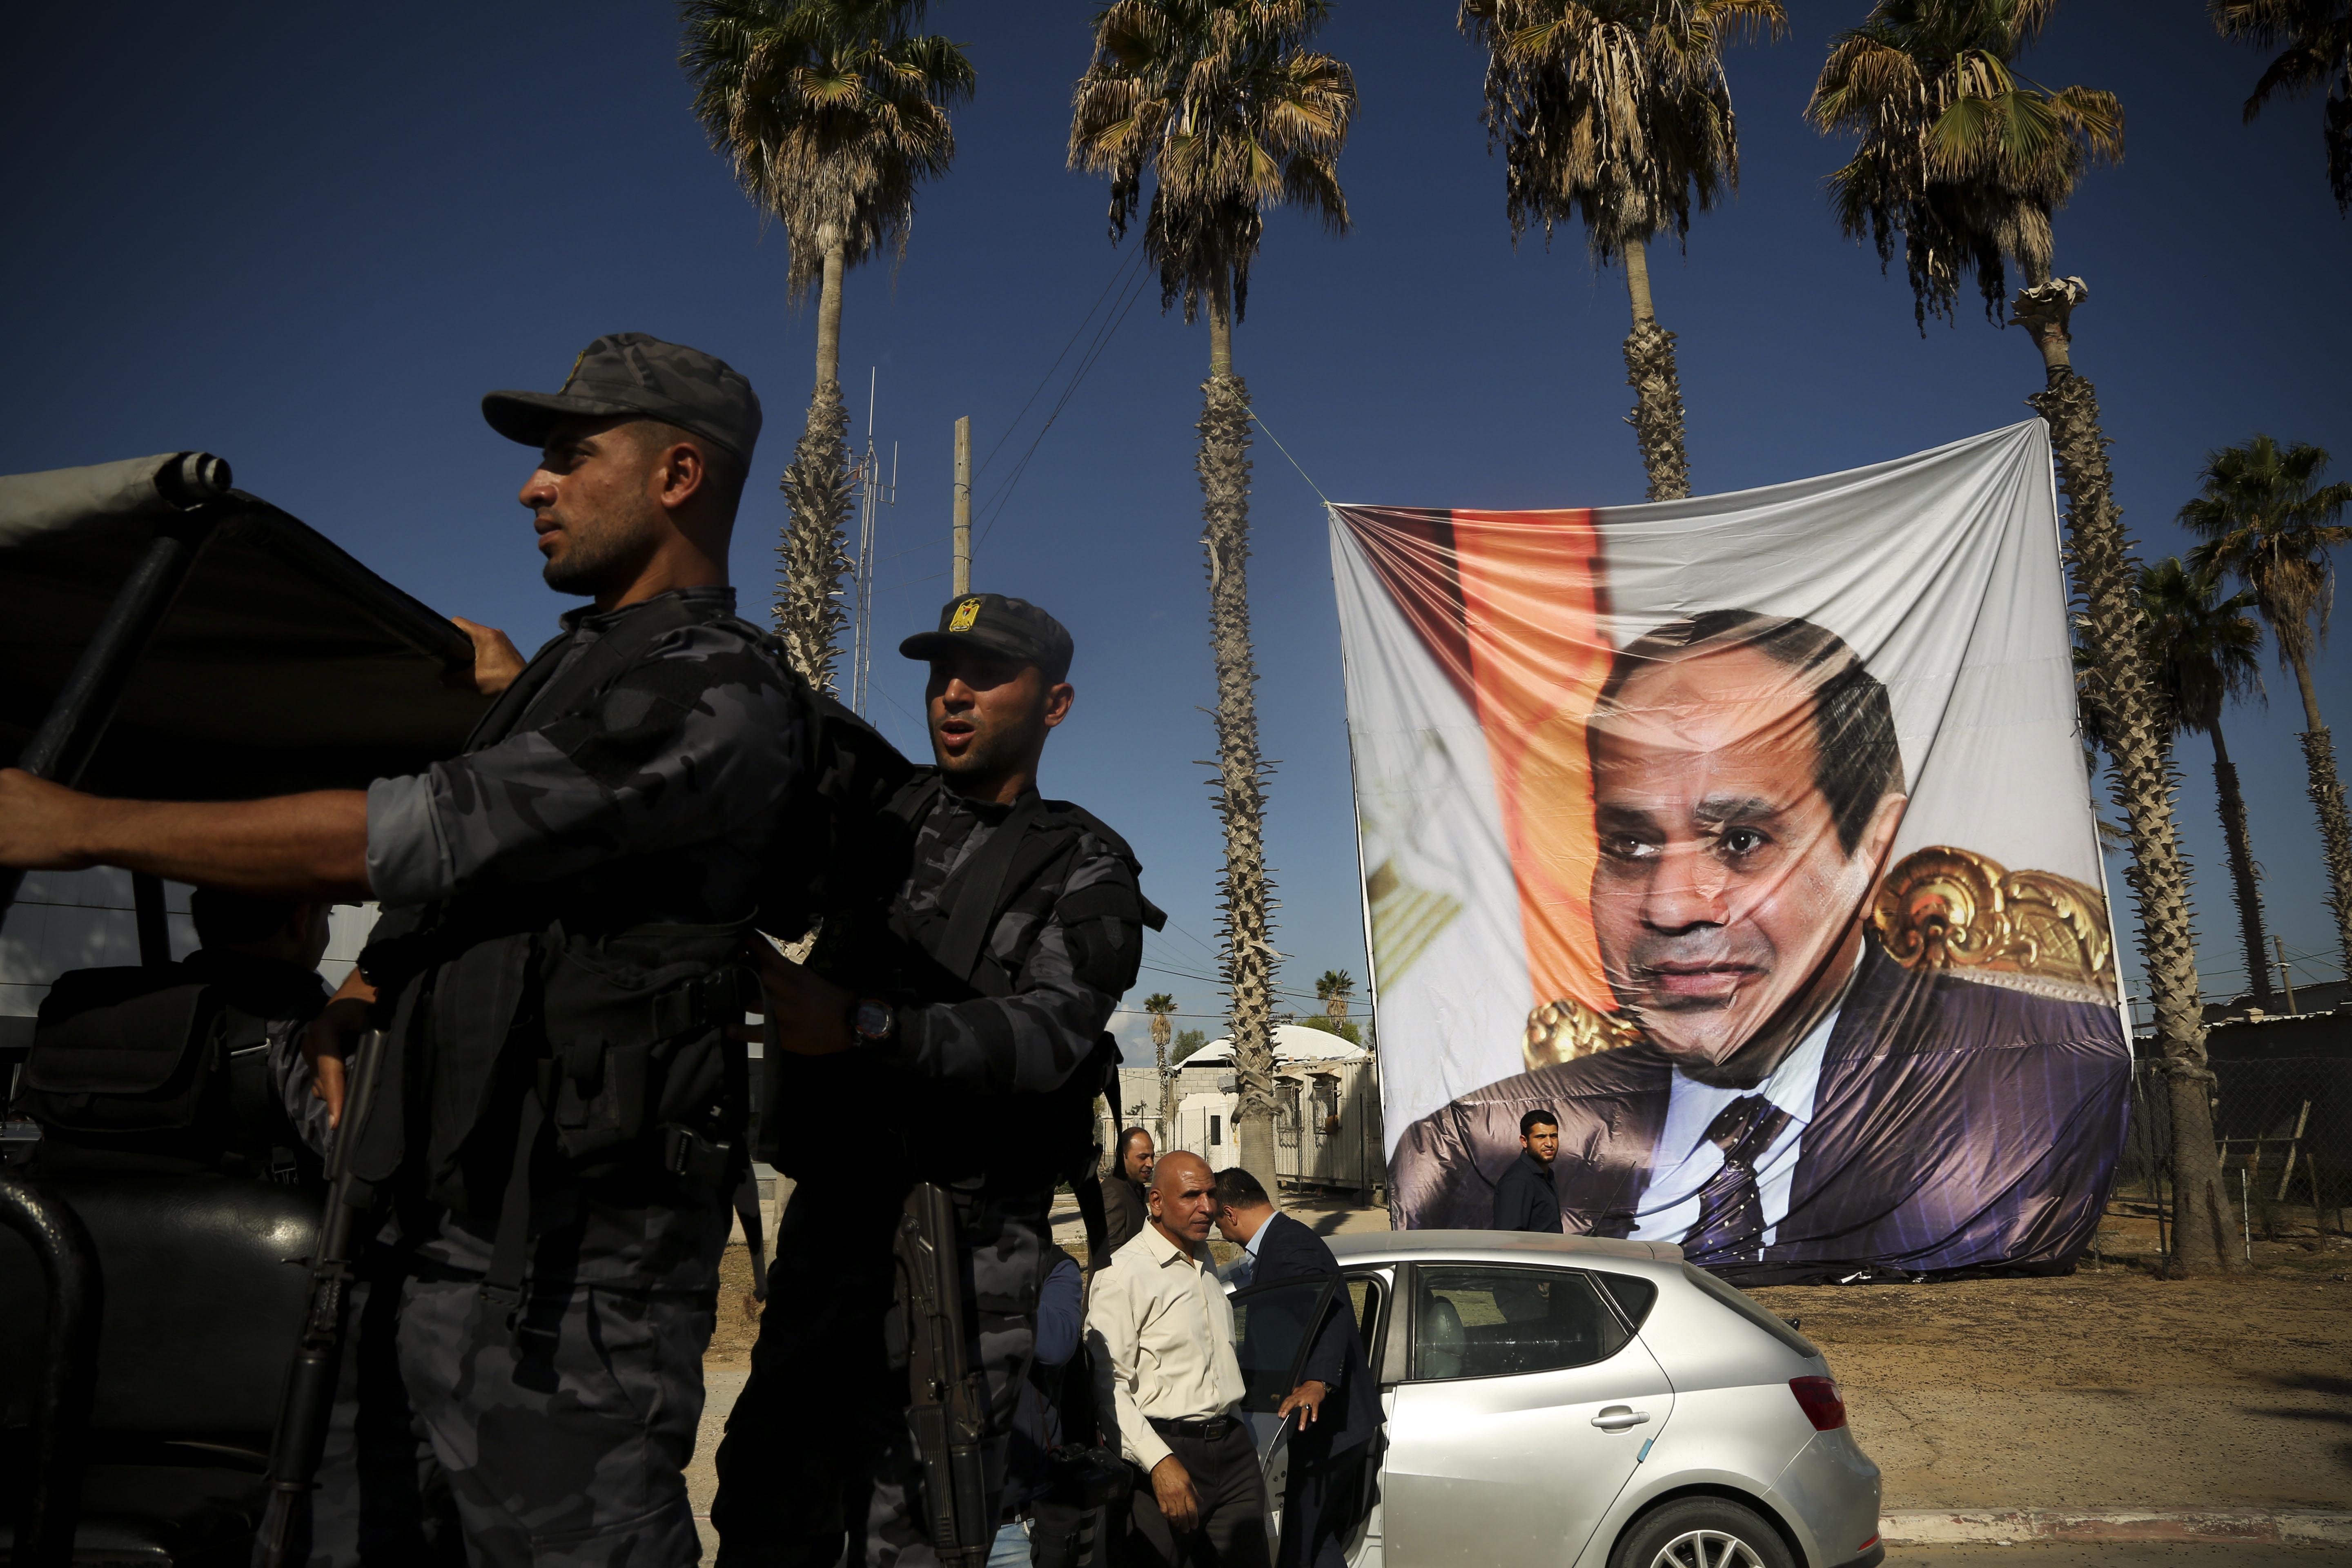 Egypt election 2018: Sisi won, but he should be worried - Vox